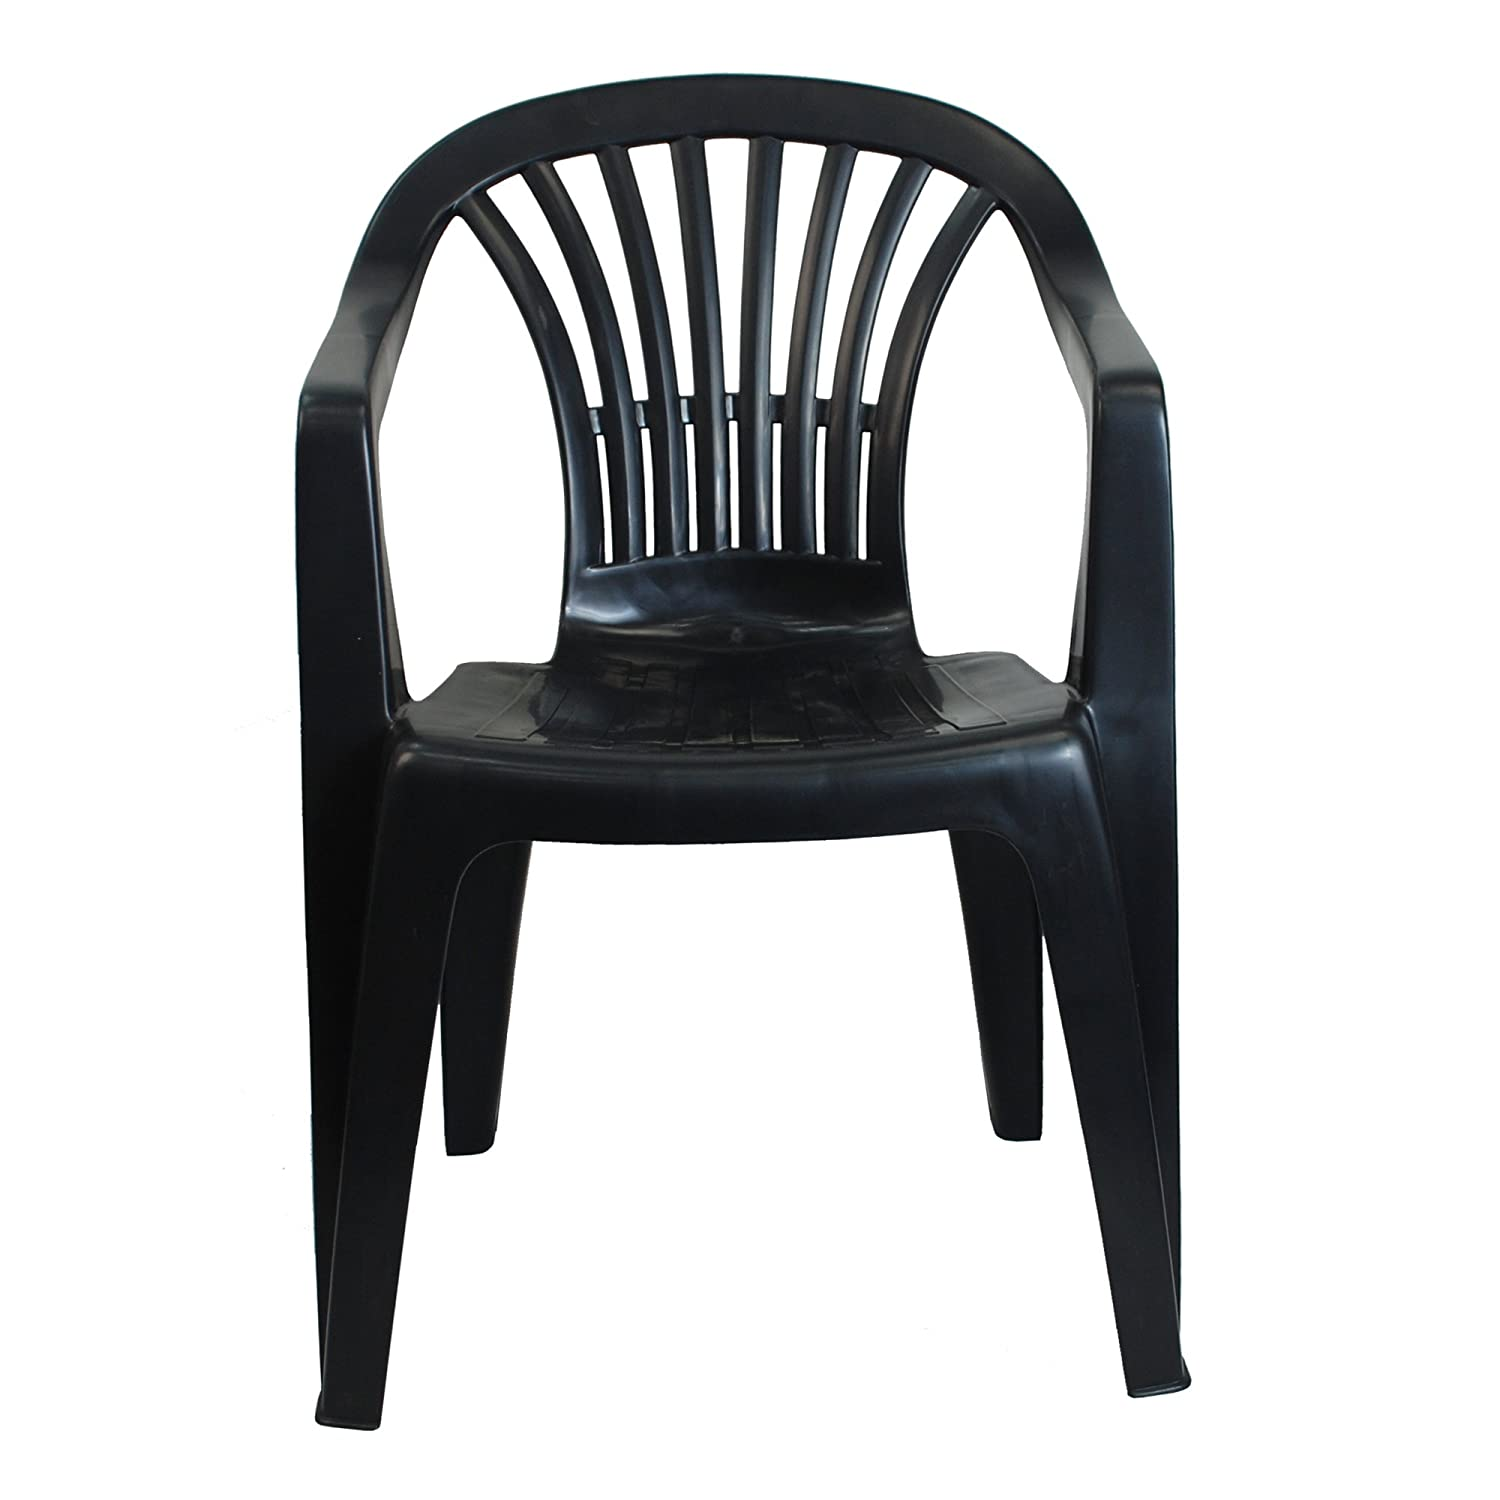 6x Indoor Outdoor Black Plastic Chairs Garden Patio